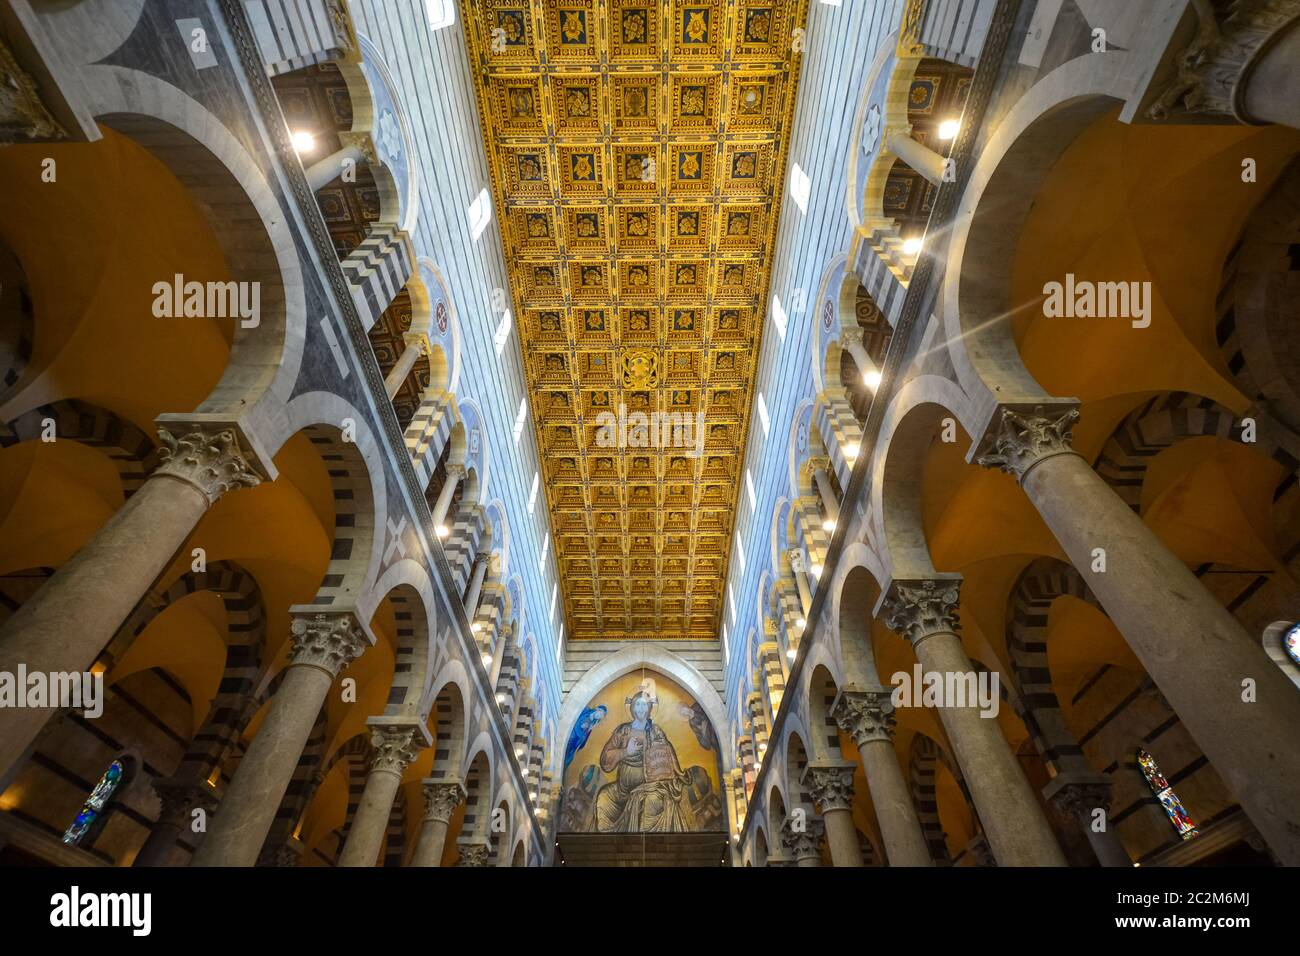 Interior ceiling and columns of the Duomo cathedral on the Piazza dei Miracoli in the Tuscan city of Pisa, Italy Stock Photo